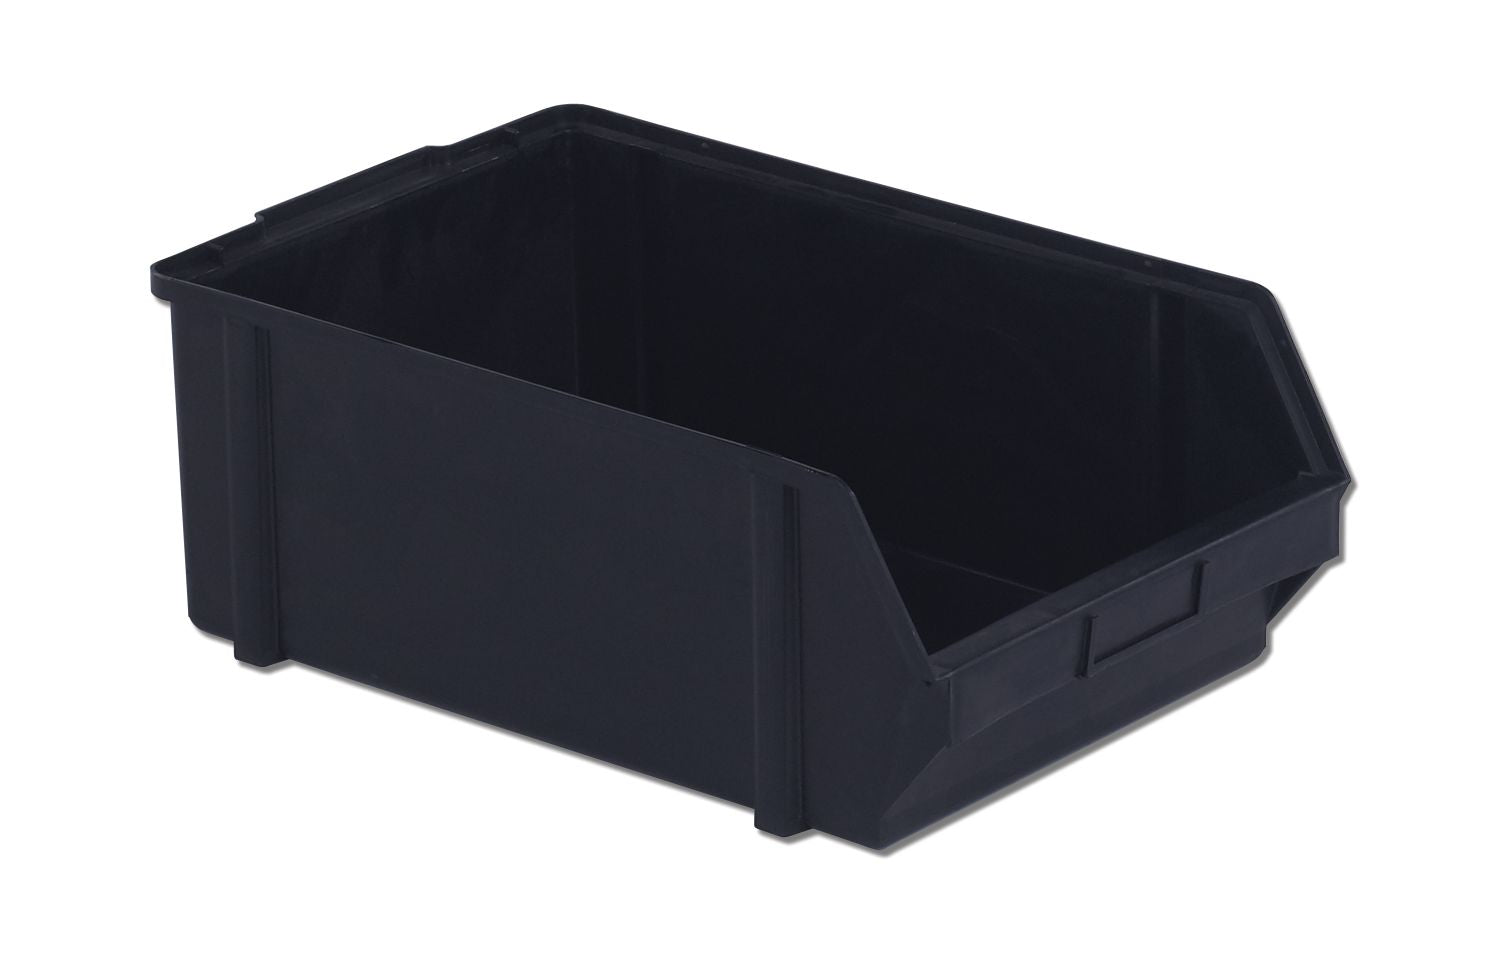 PB50-FXL | 19X12X7 ESD PlastiBox Container | Pack of 6